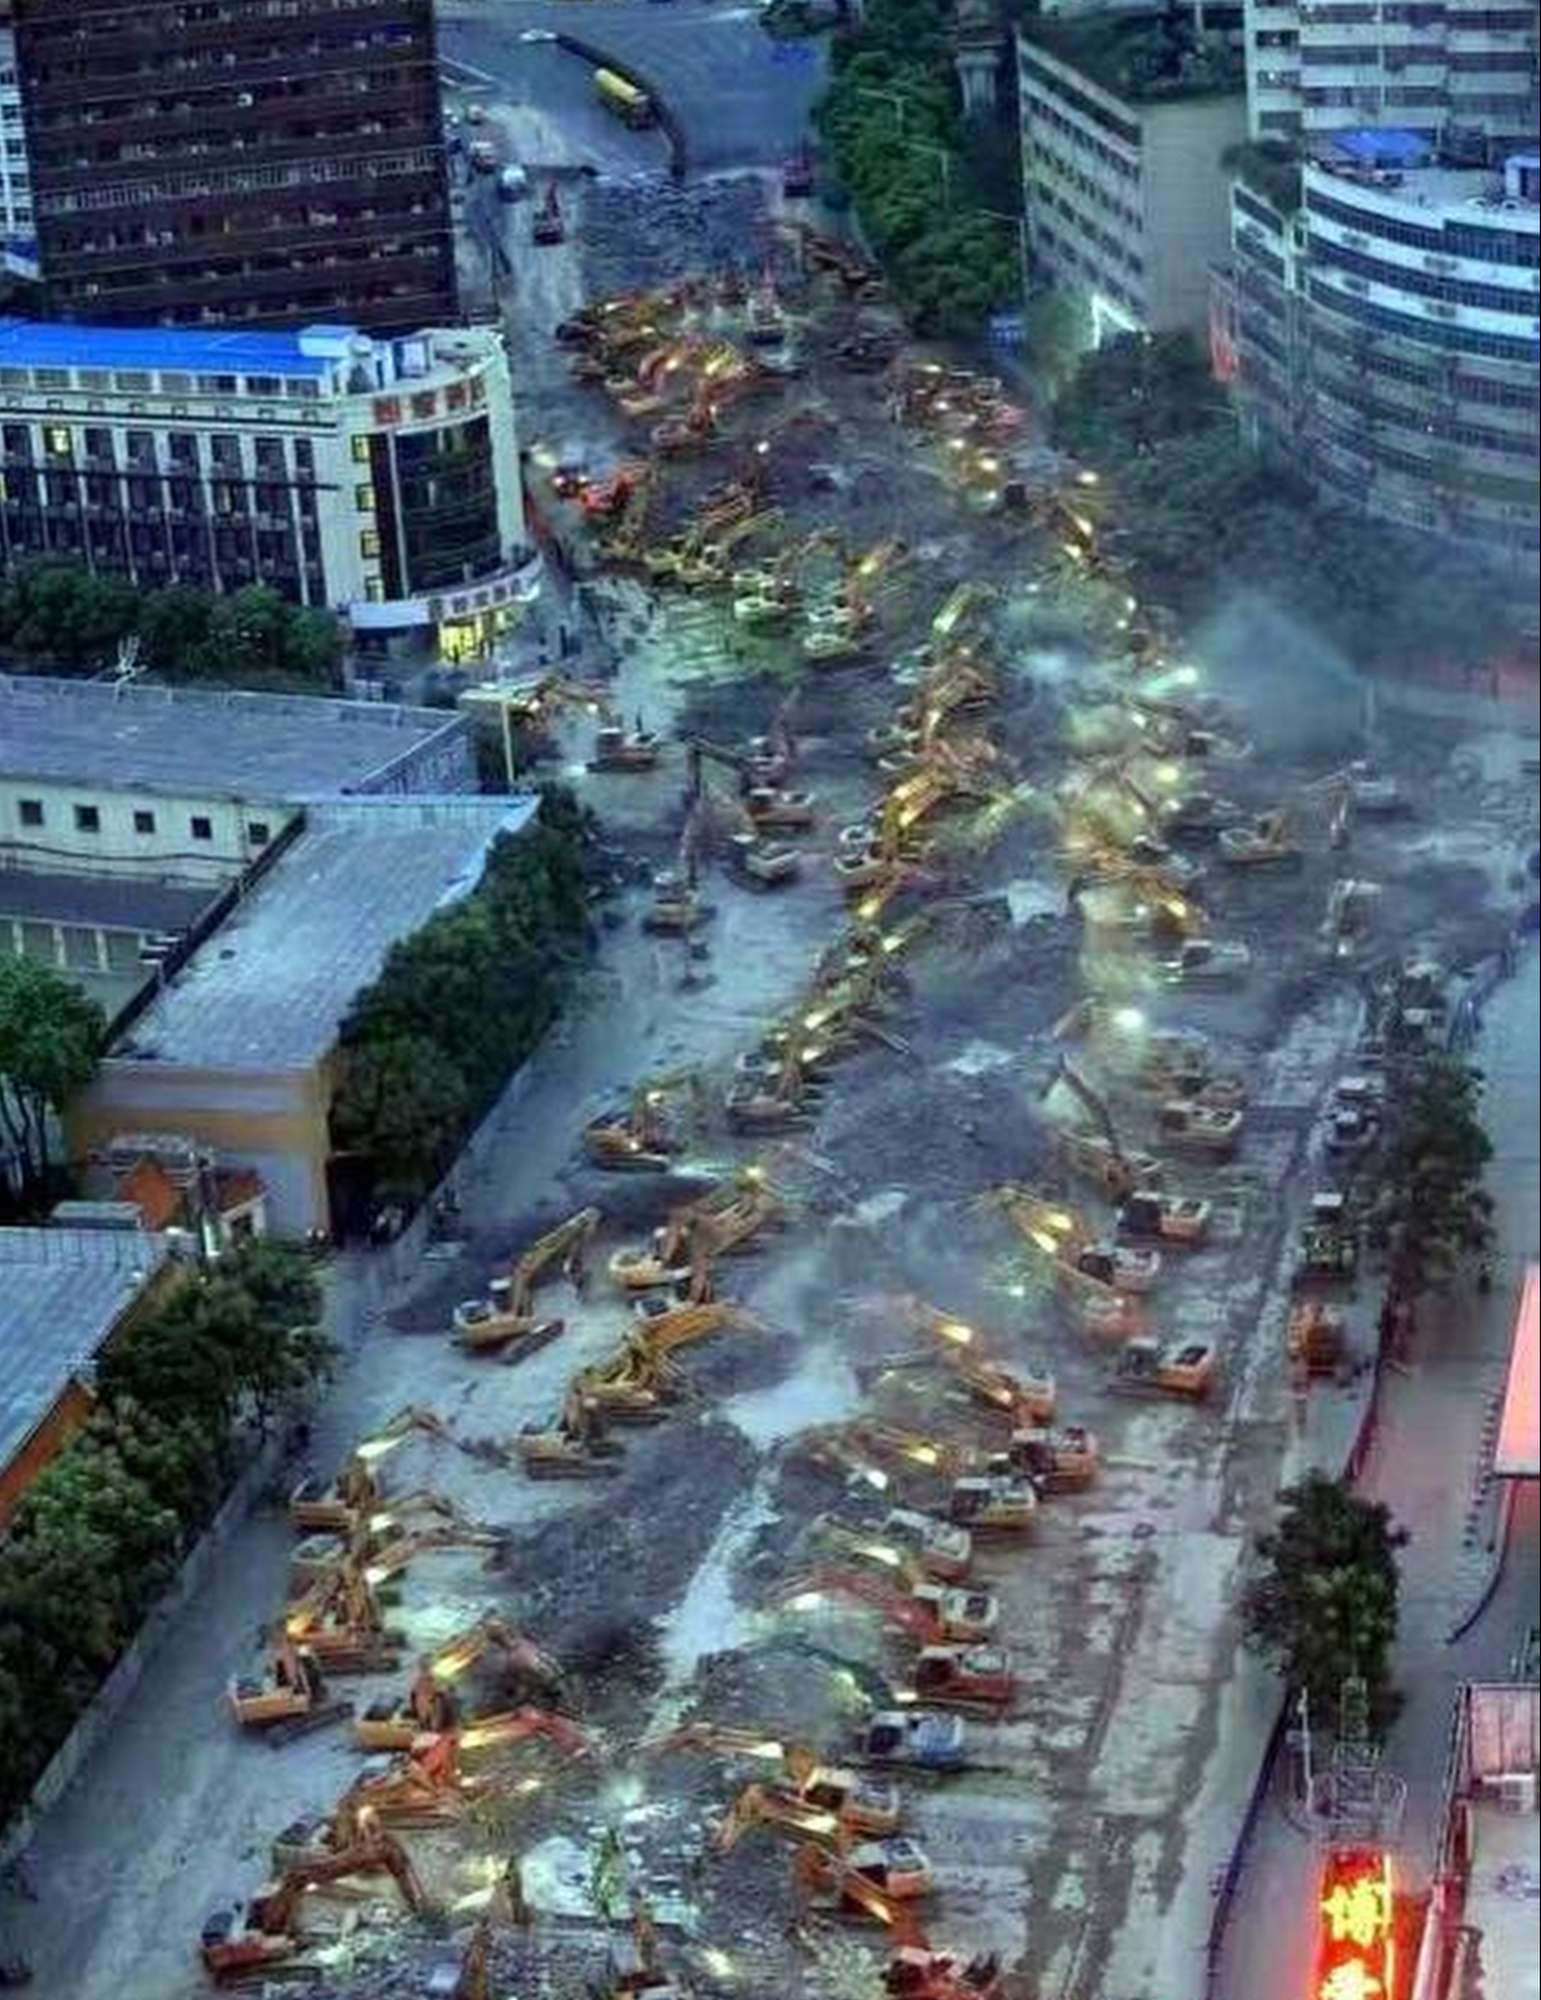 116 excavadoras derriban un viaducto en China en una noche 116 bulldozers demolish a viaduct in China in one night